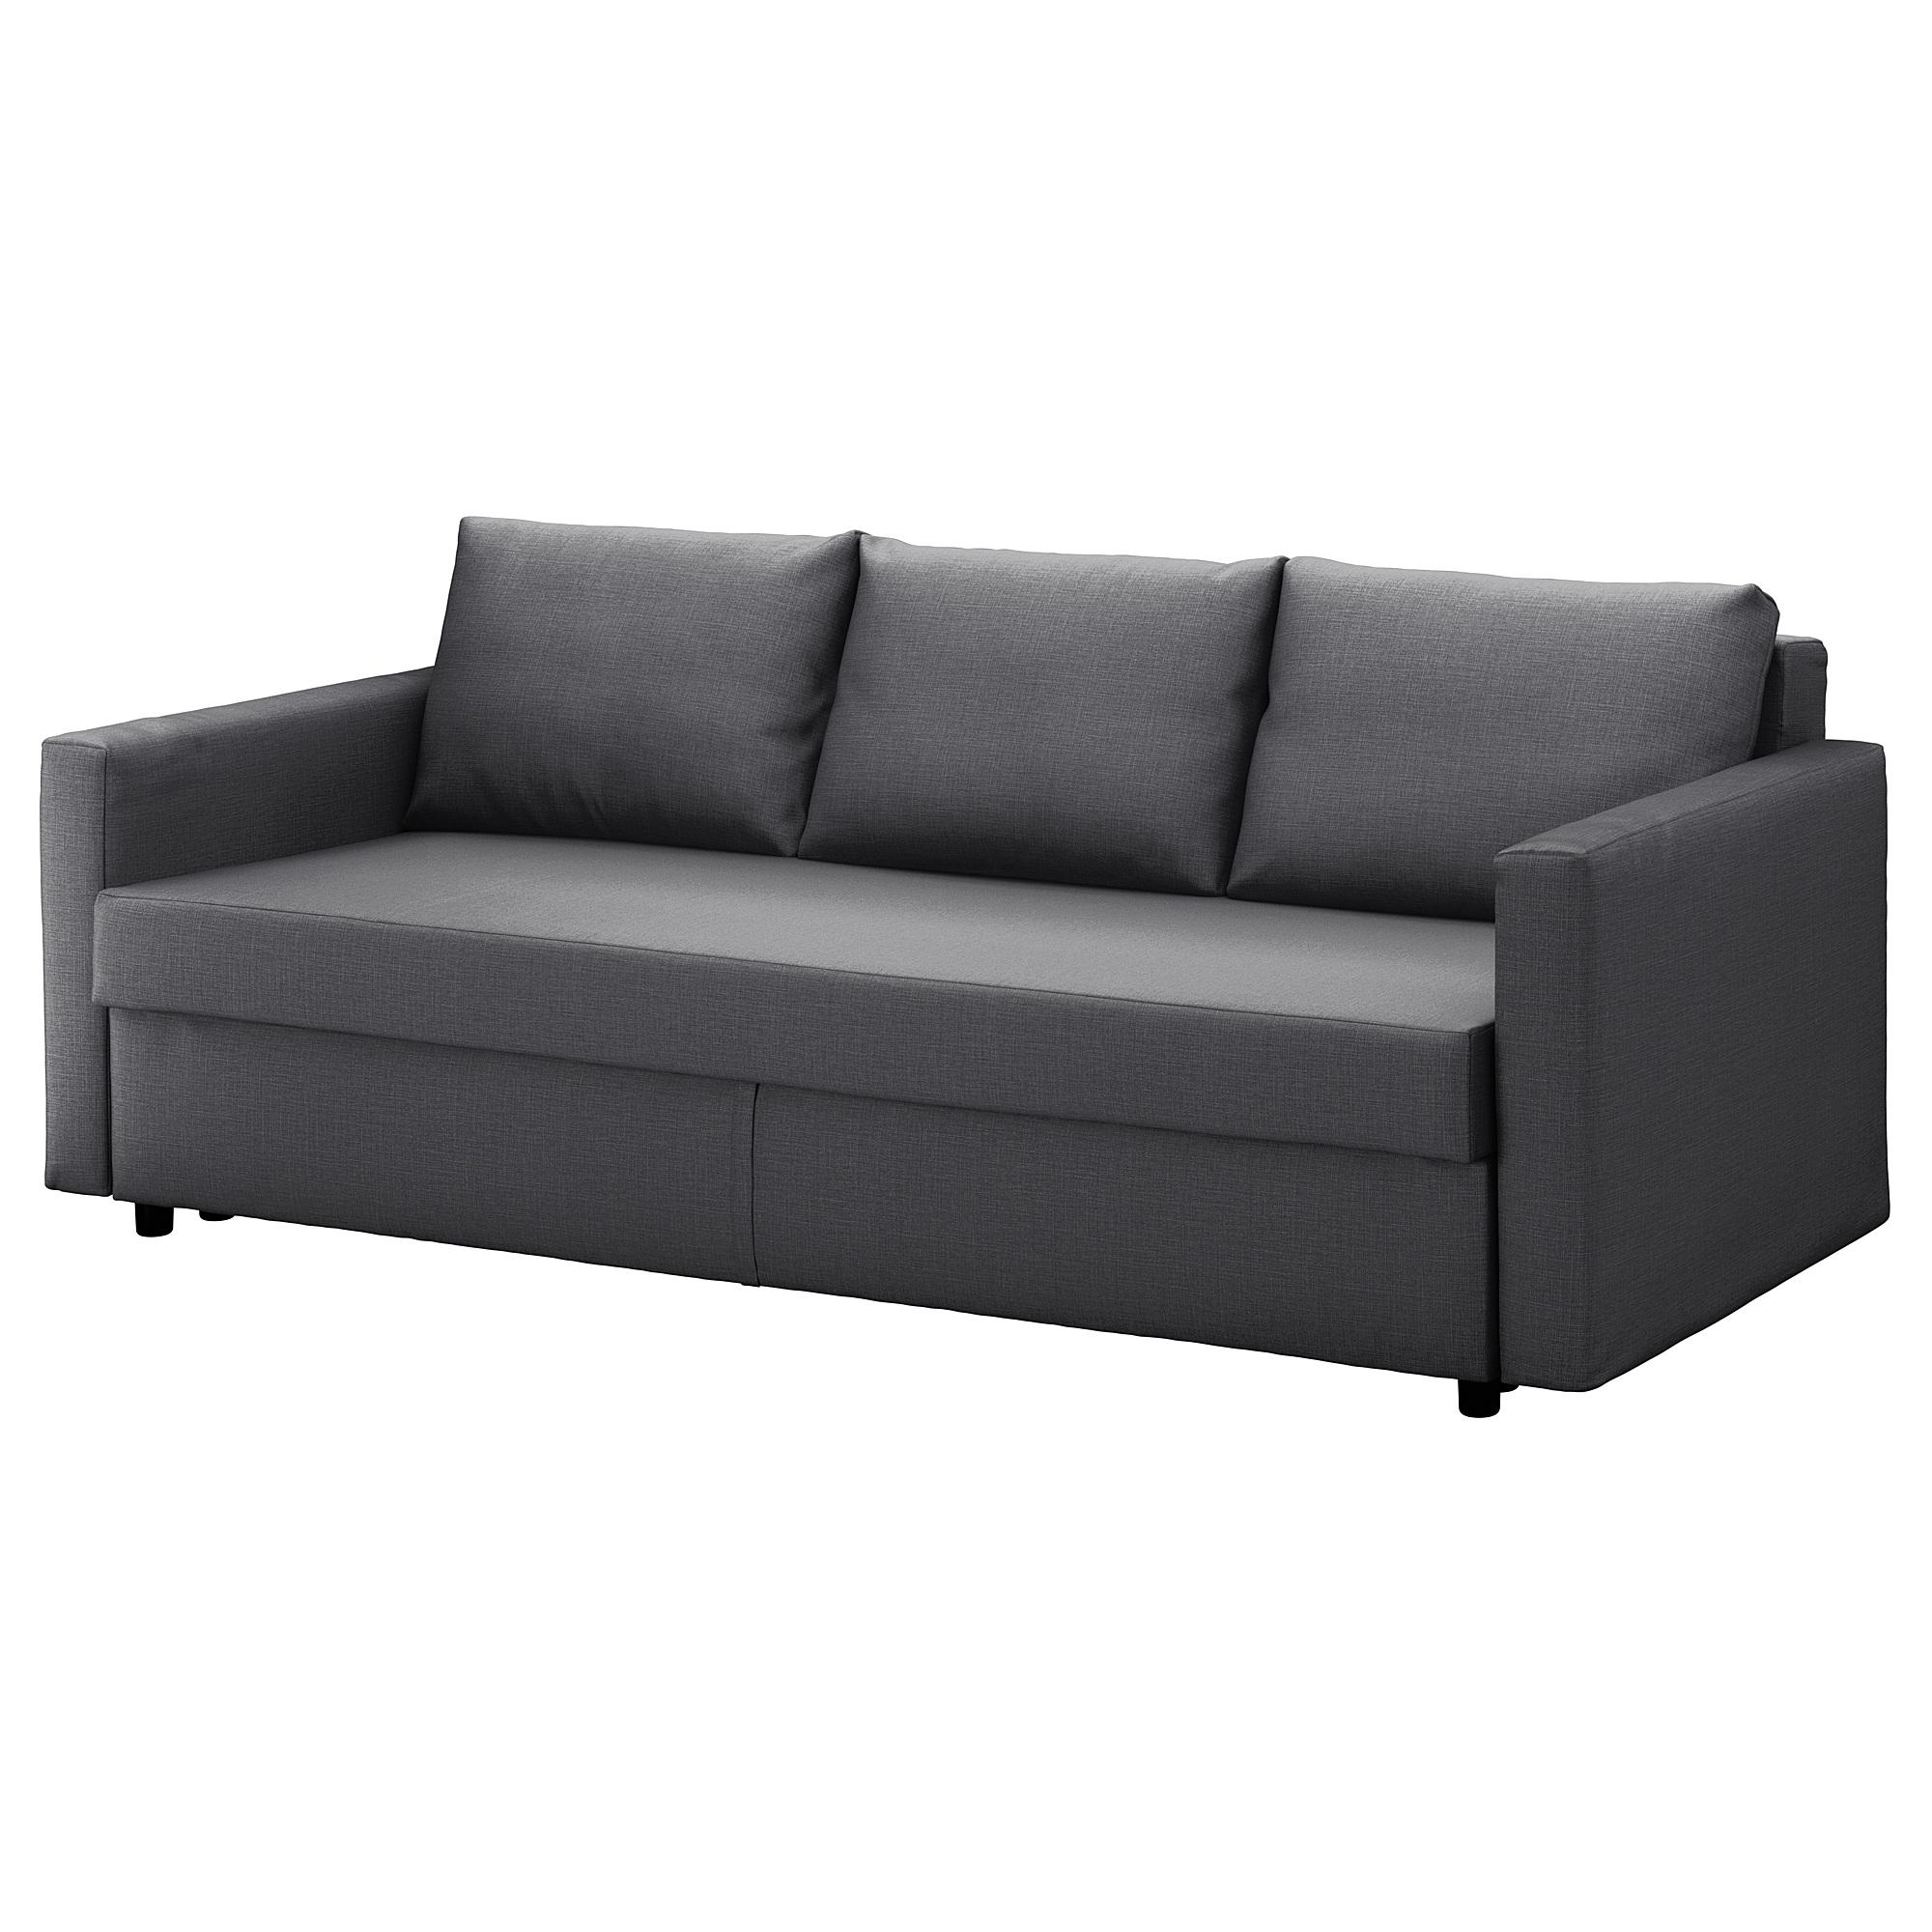 Friheten Sleeper Sofa – Skiftebo Dark Gray – Ikea Within Sofa Beds (Image 3 of 20)